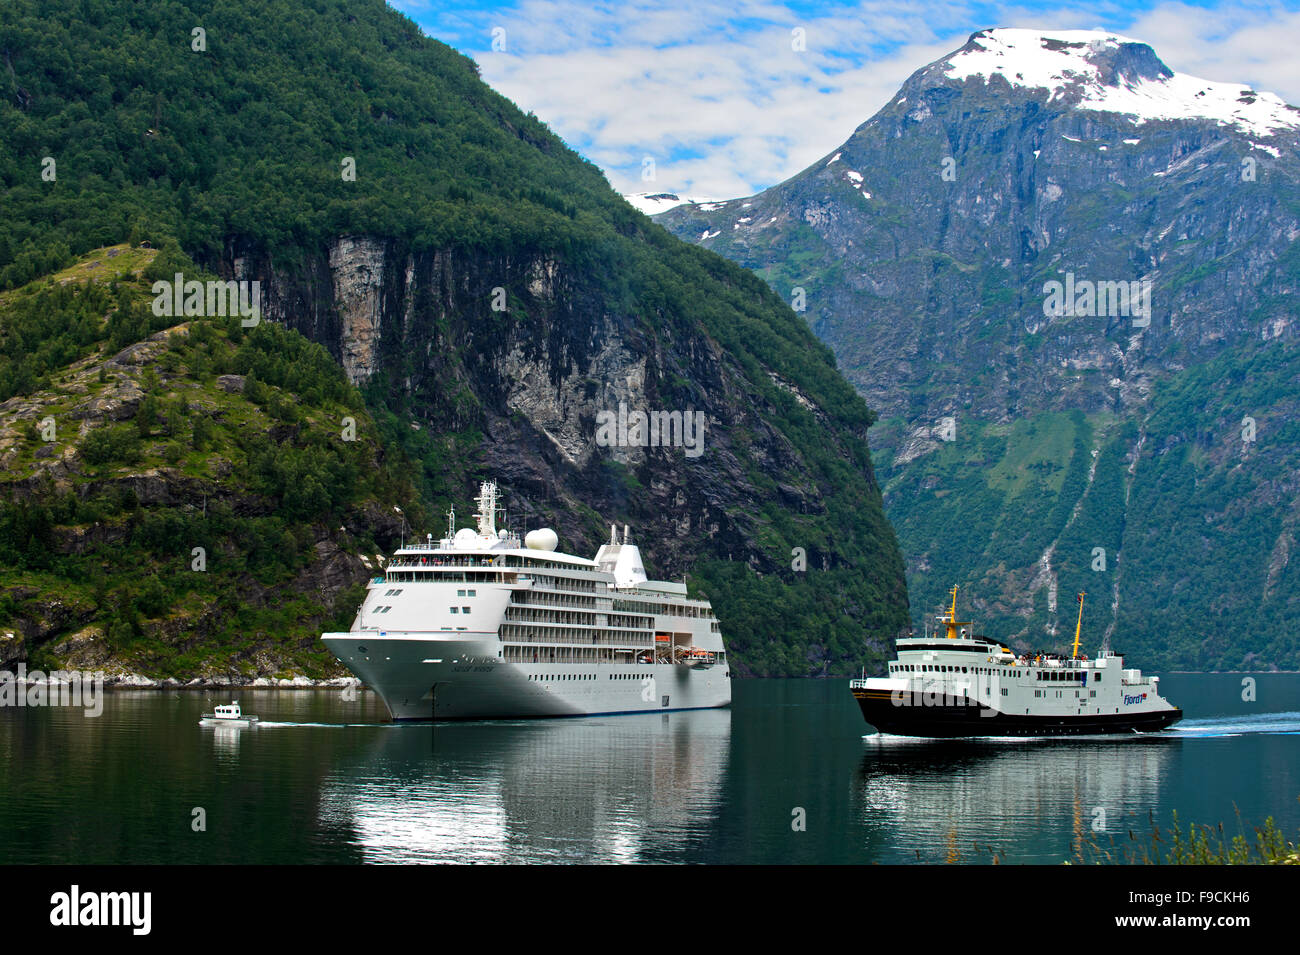 Cruise ship Silver Whisper and a local ferry in the Geirangerfjord, Geiranger, Norway - Stock Image